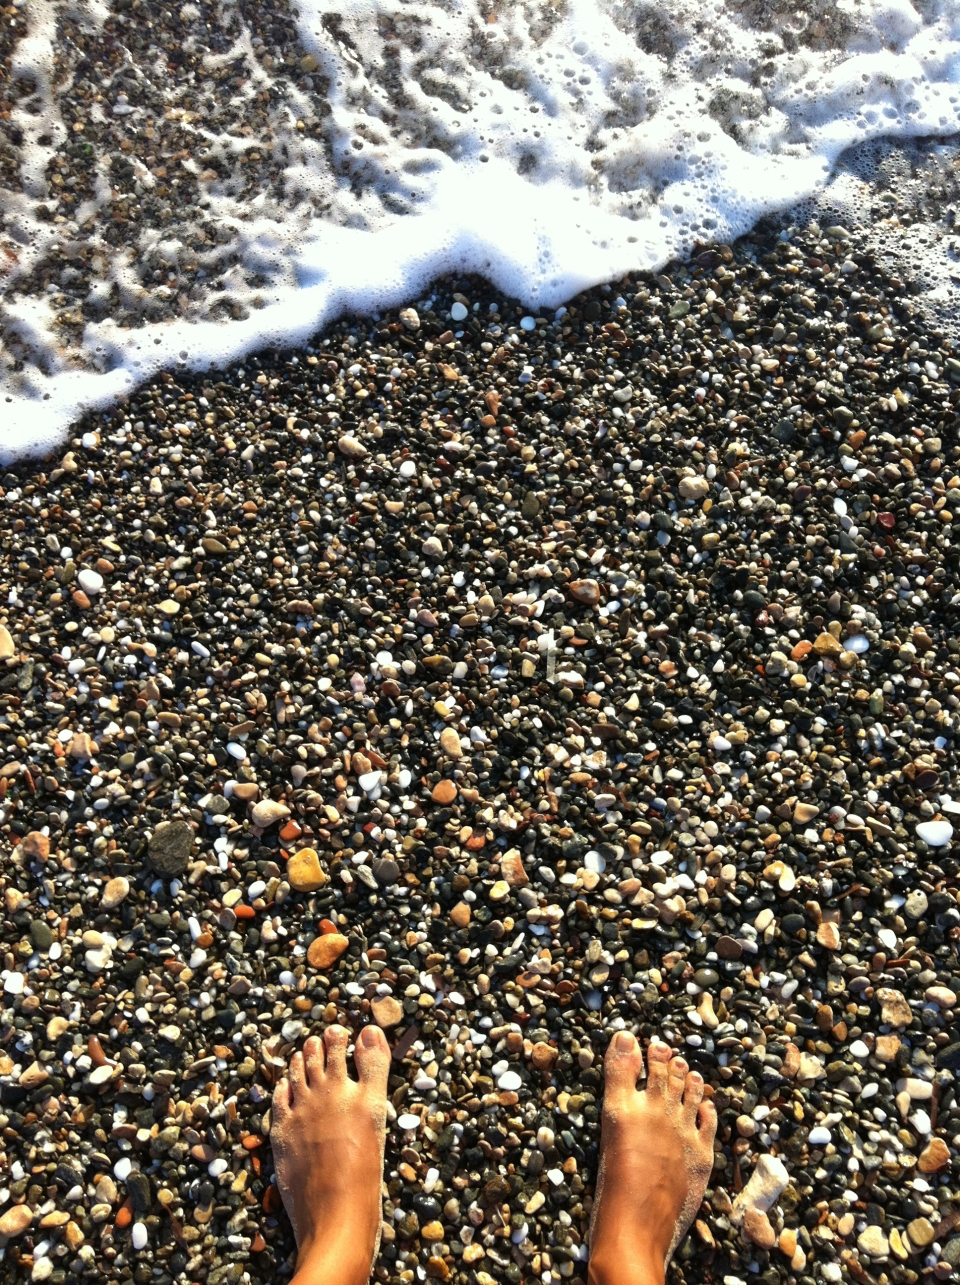 One of the tiny pebbled beaches in Ambelas. I'd like to think that only I know of these little hidden treasures.